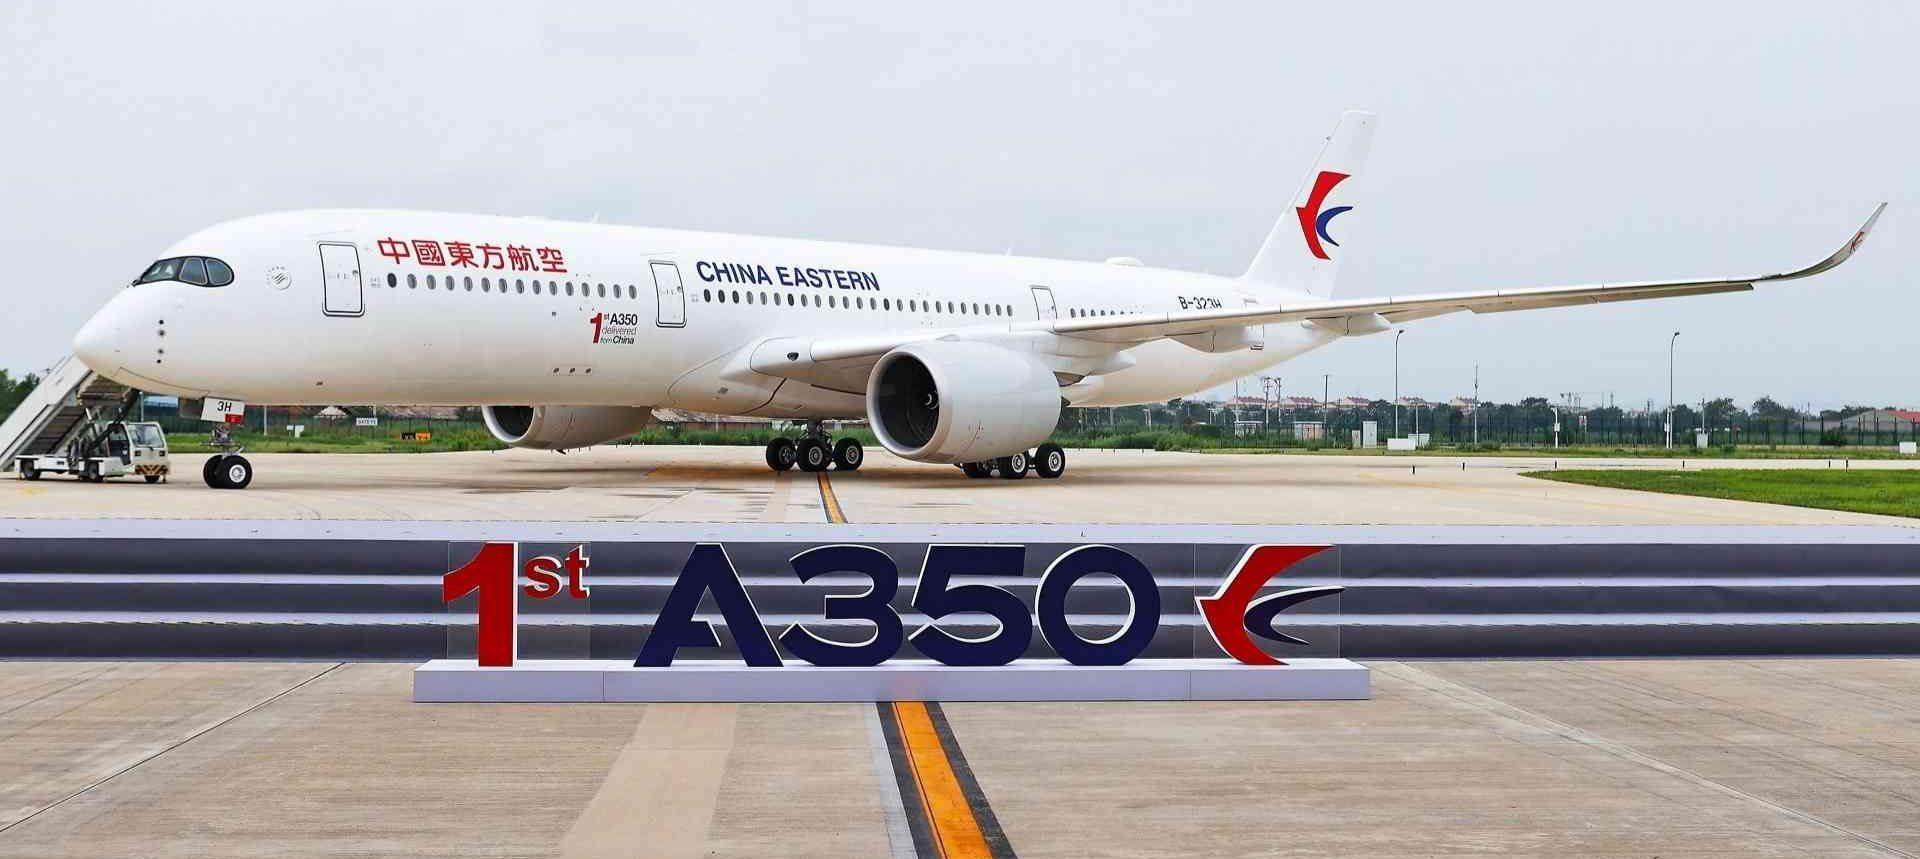 China Eastern Airlines Airbus A350 - SkyGoFly